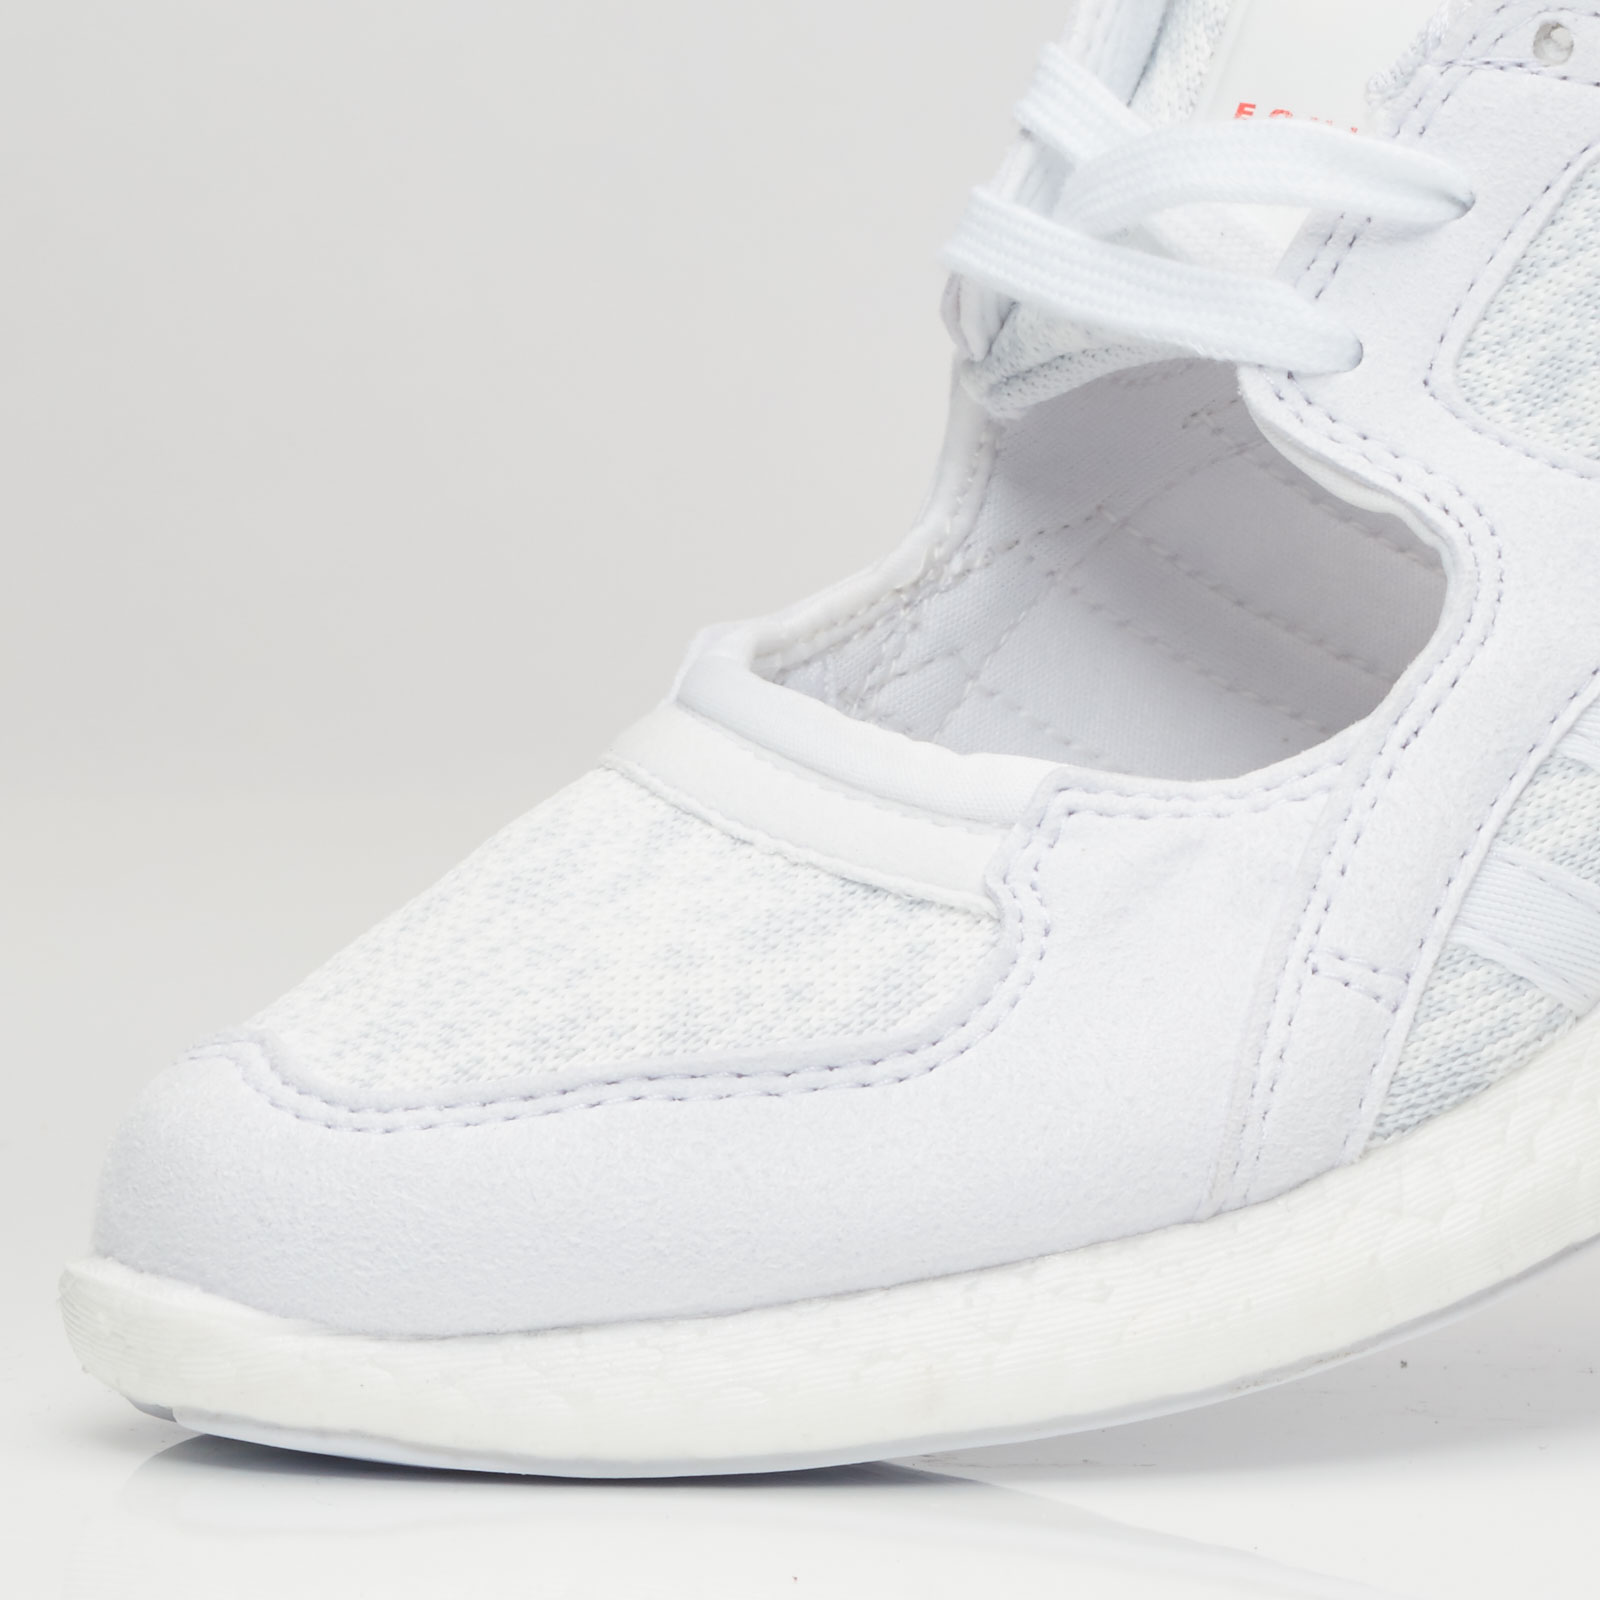 huge selection of 1bd8a 3a5f9 adidas Equipment Racing 91/16 W - Ba7590 - Sneakersnstuff ...